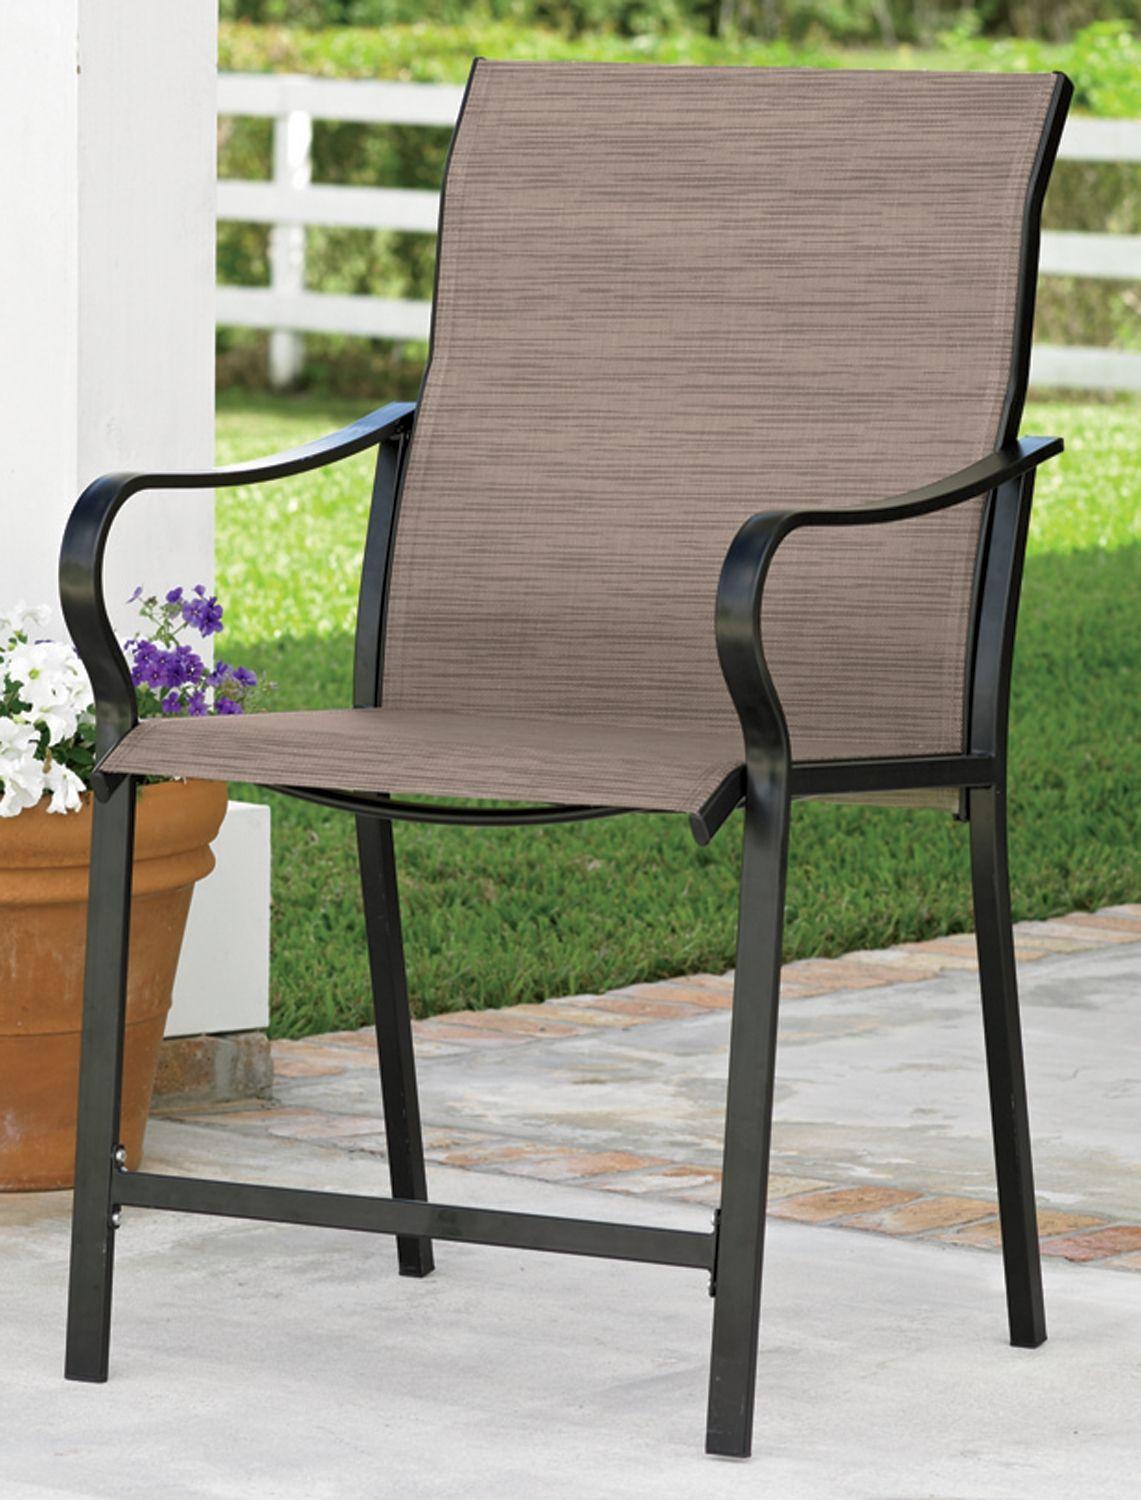 Extra-Wide High-Back Patio Chair